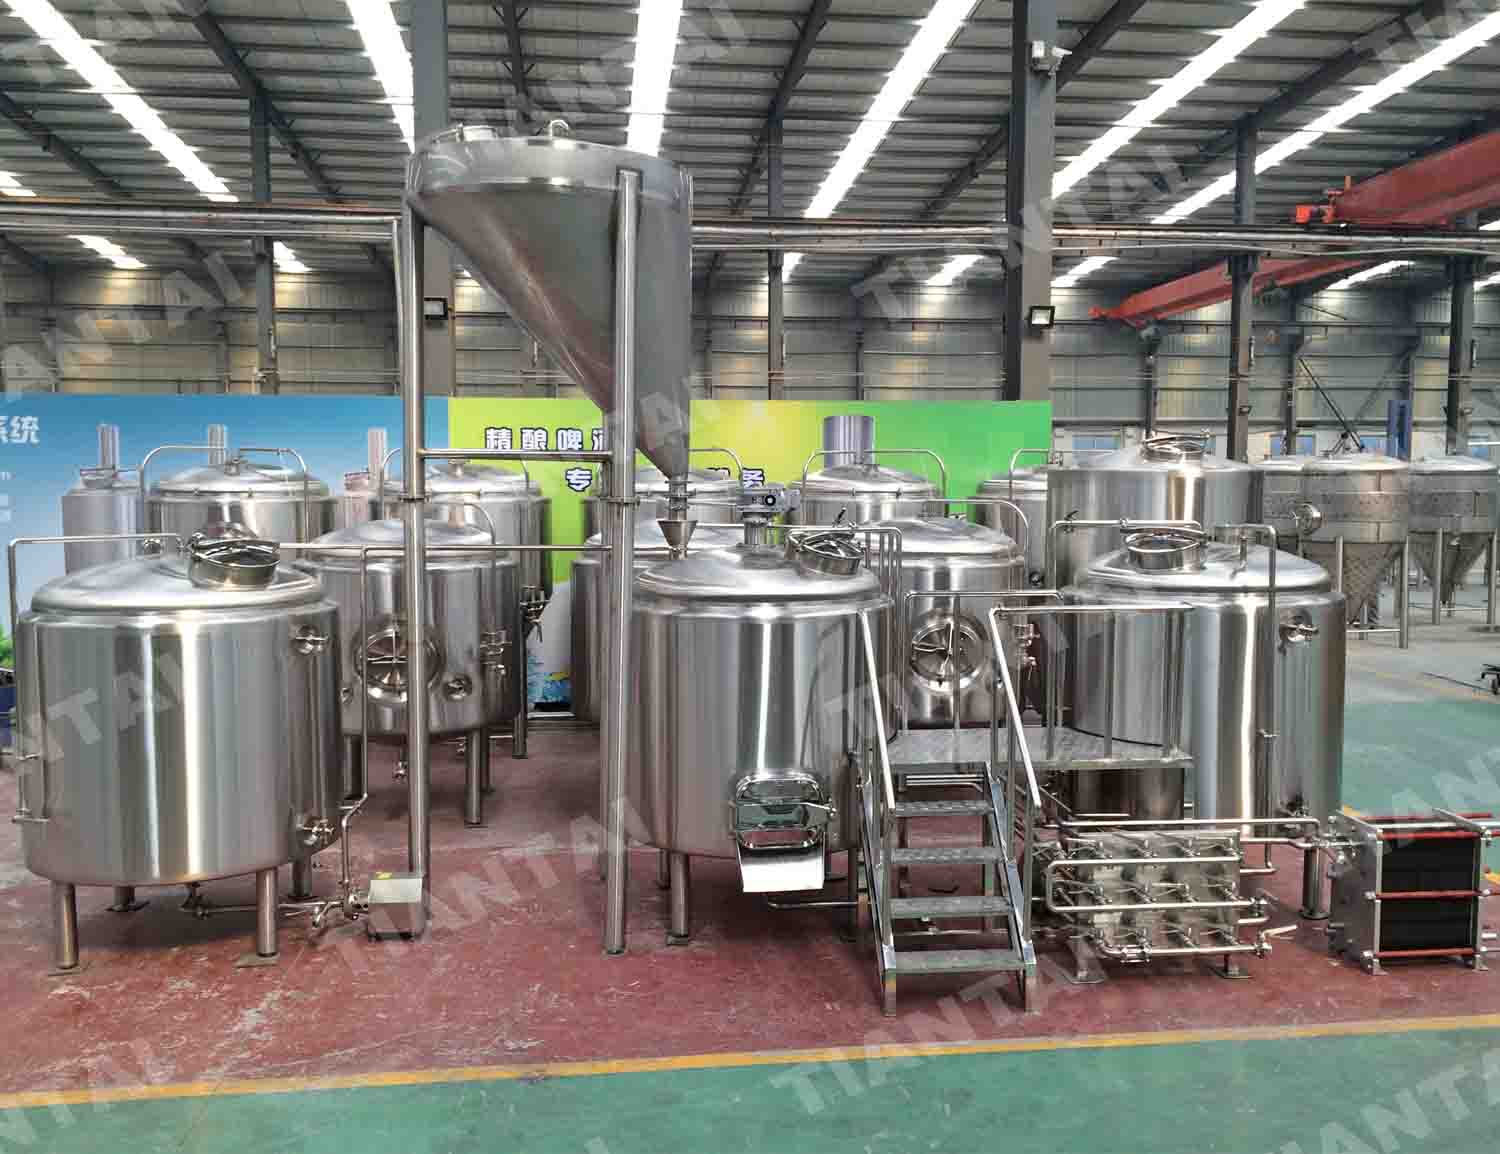 120 bbl Stainless steel fermenter